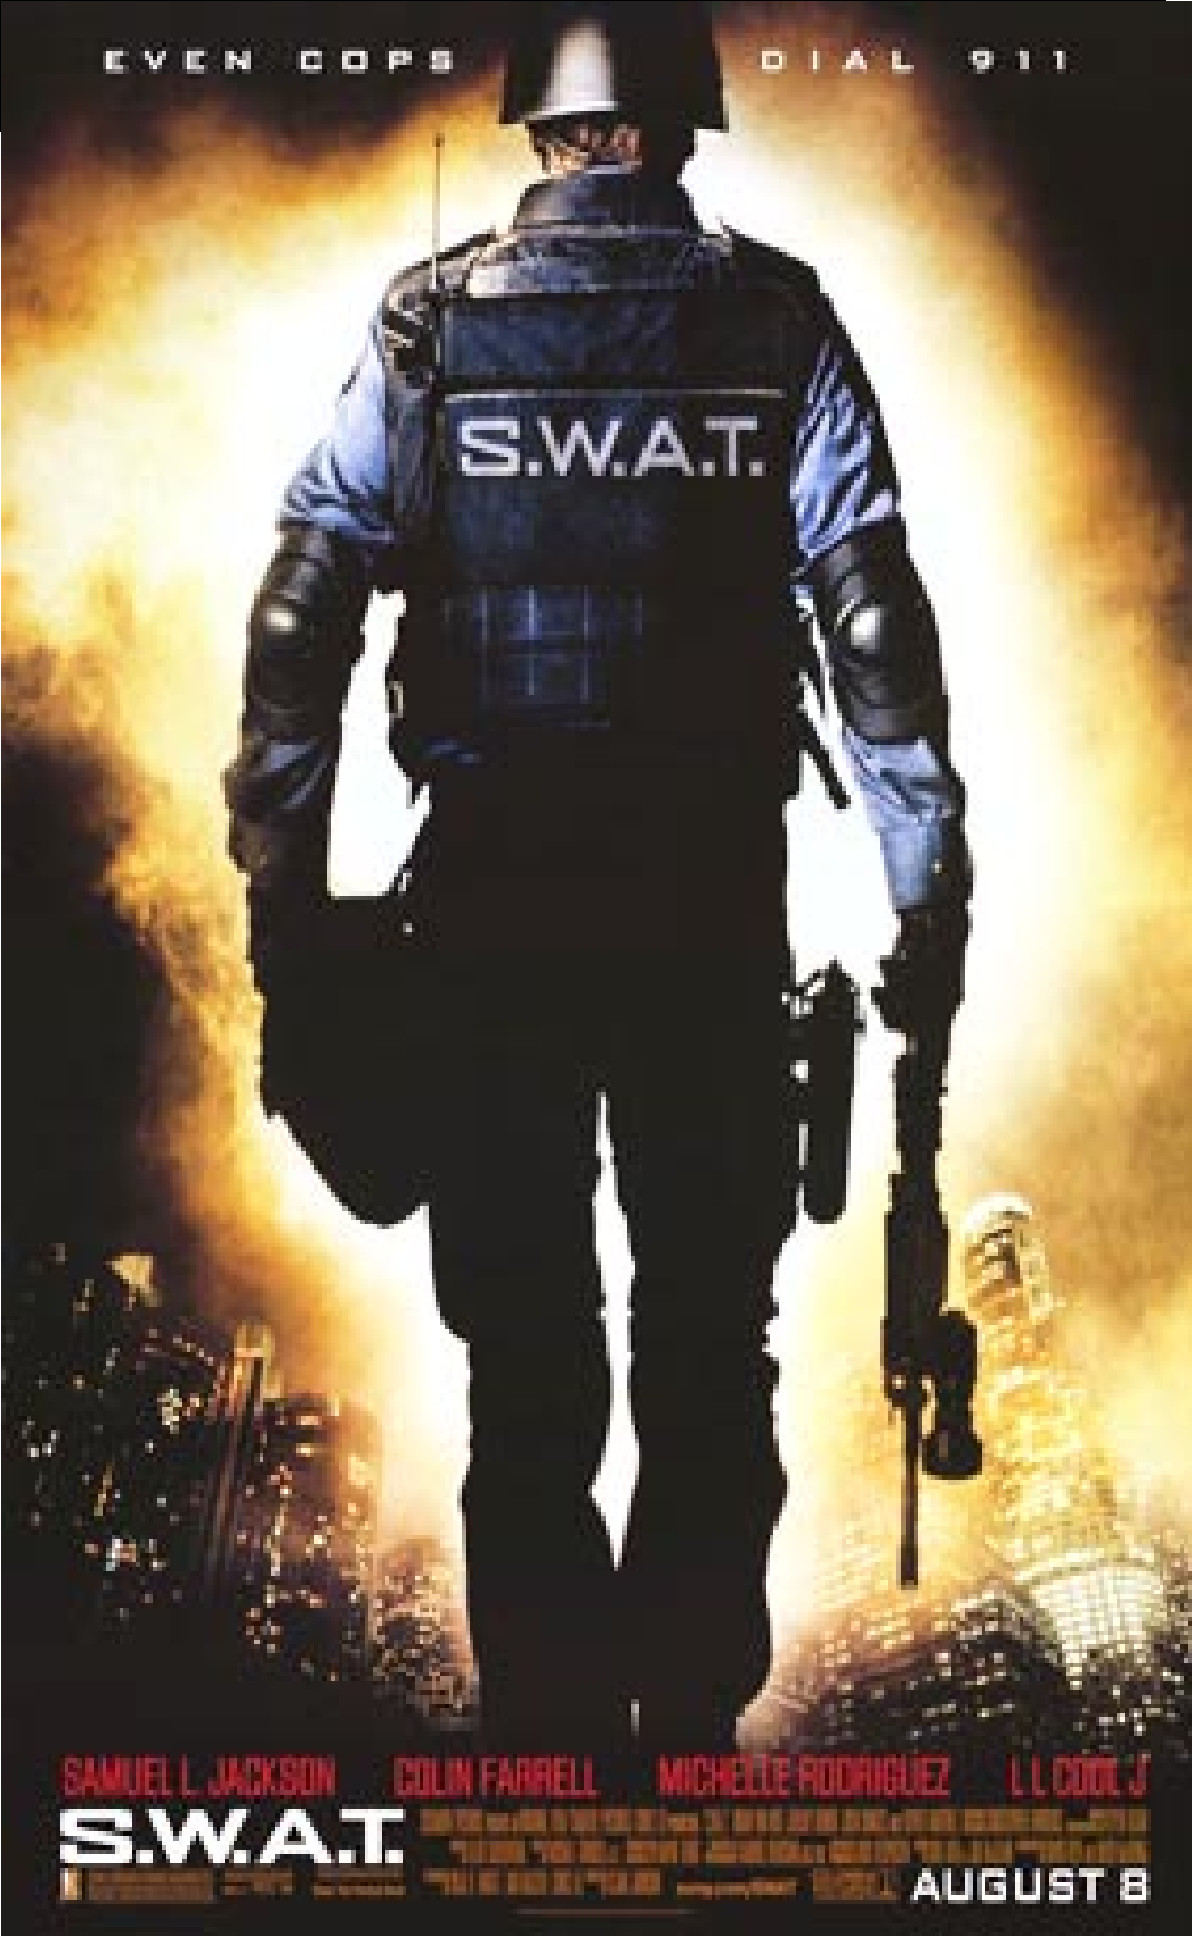 1192x1936 SWAT images S.W.A.T Poster HD wallpaper and background photos